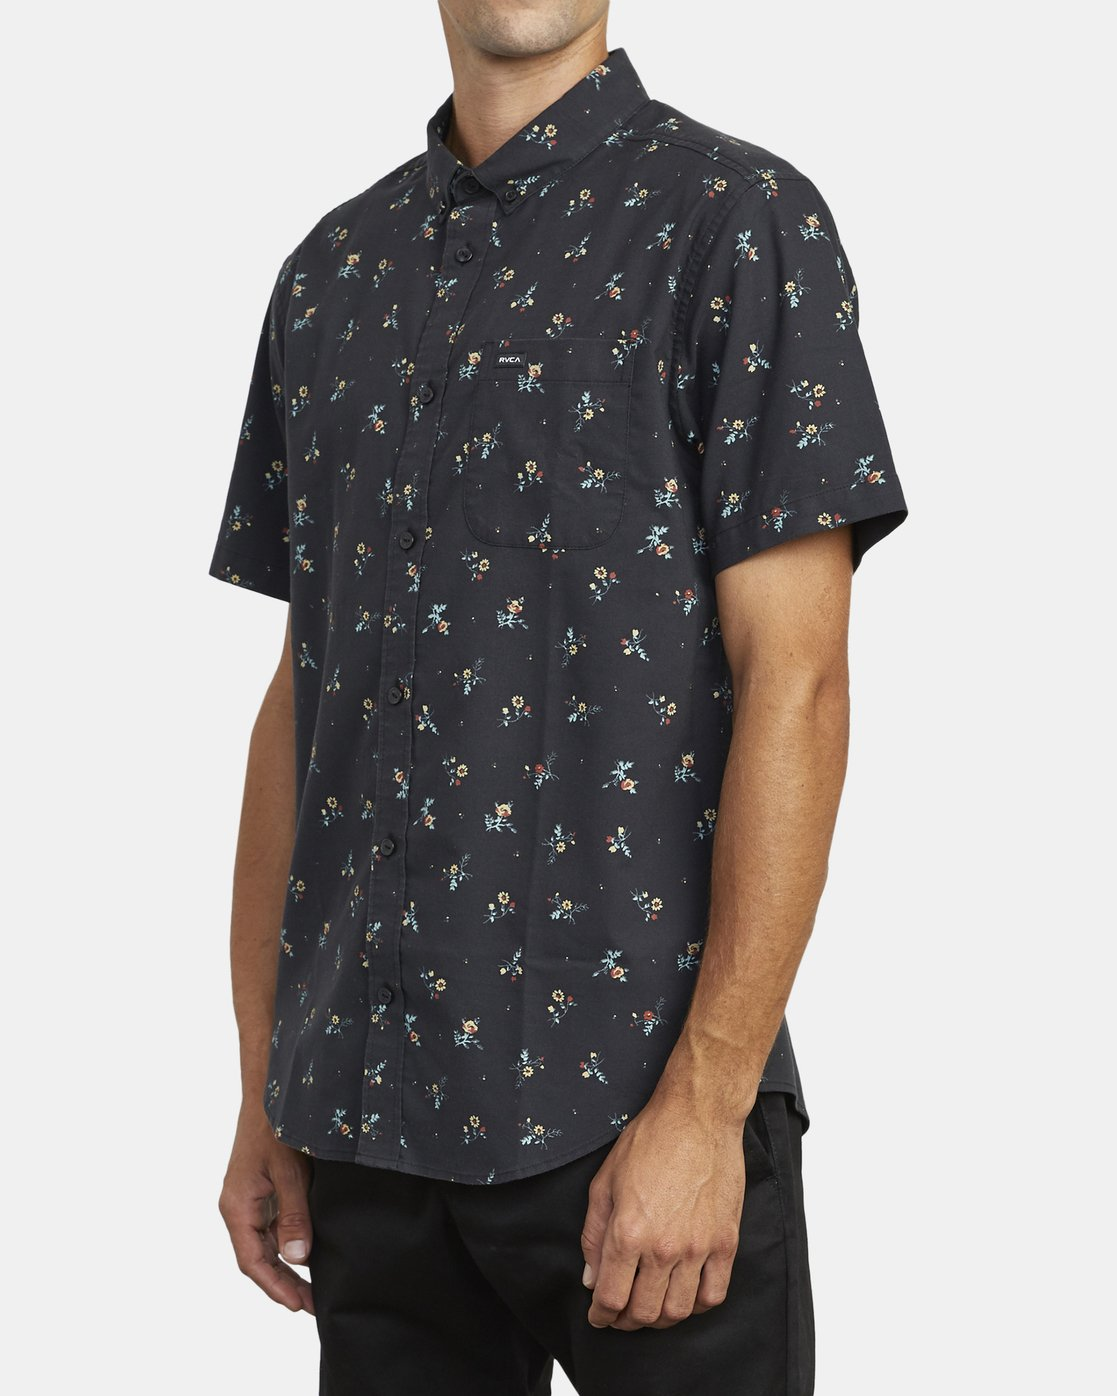 4 THAT'LL DO PRINT BUTTON-UP SHIRT Black M502VRTP RVCA